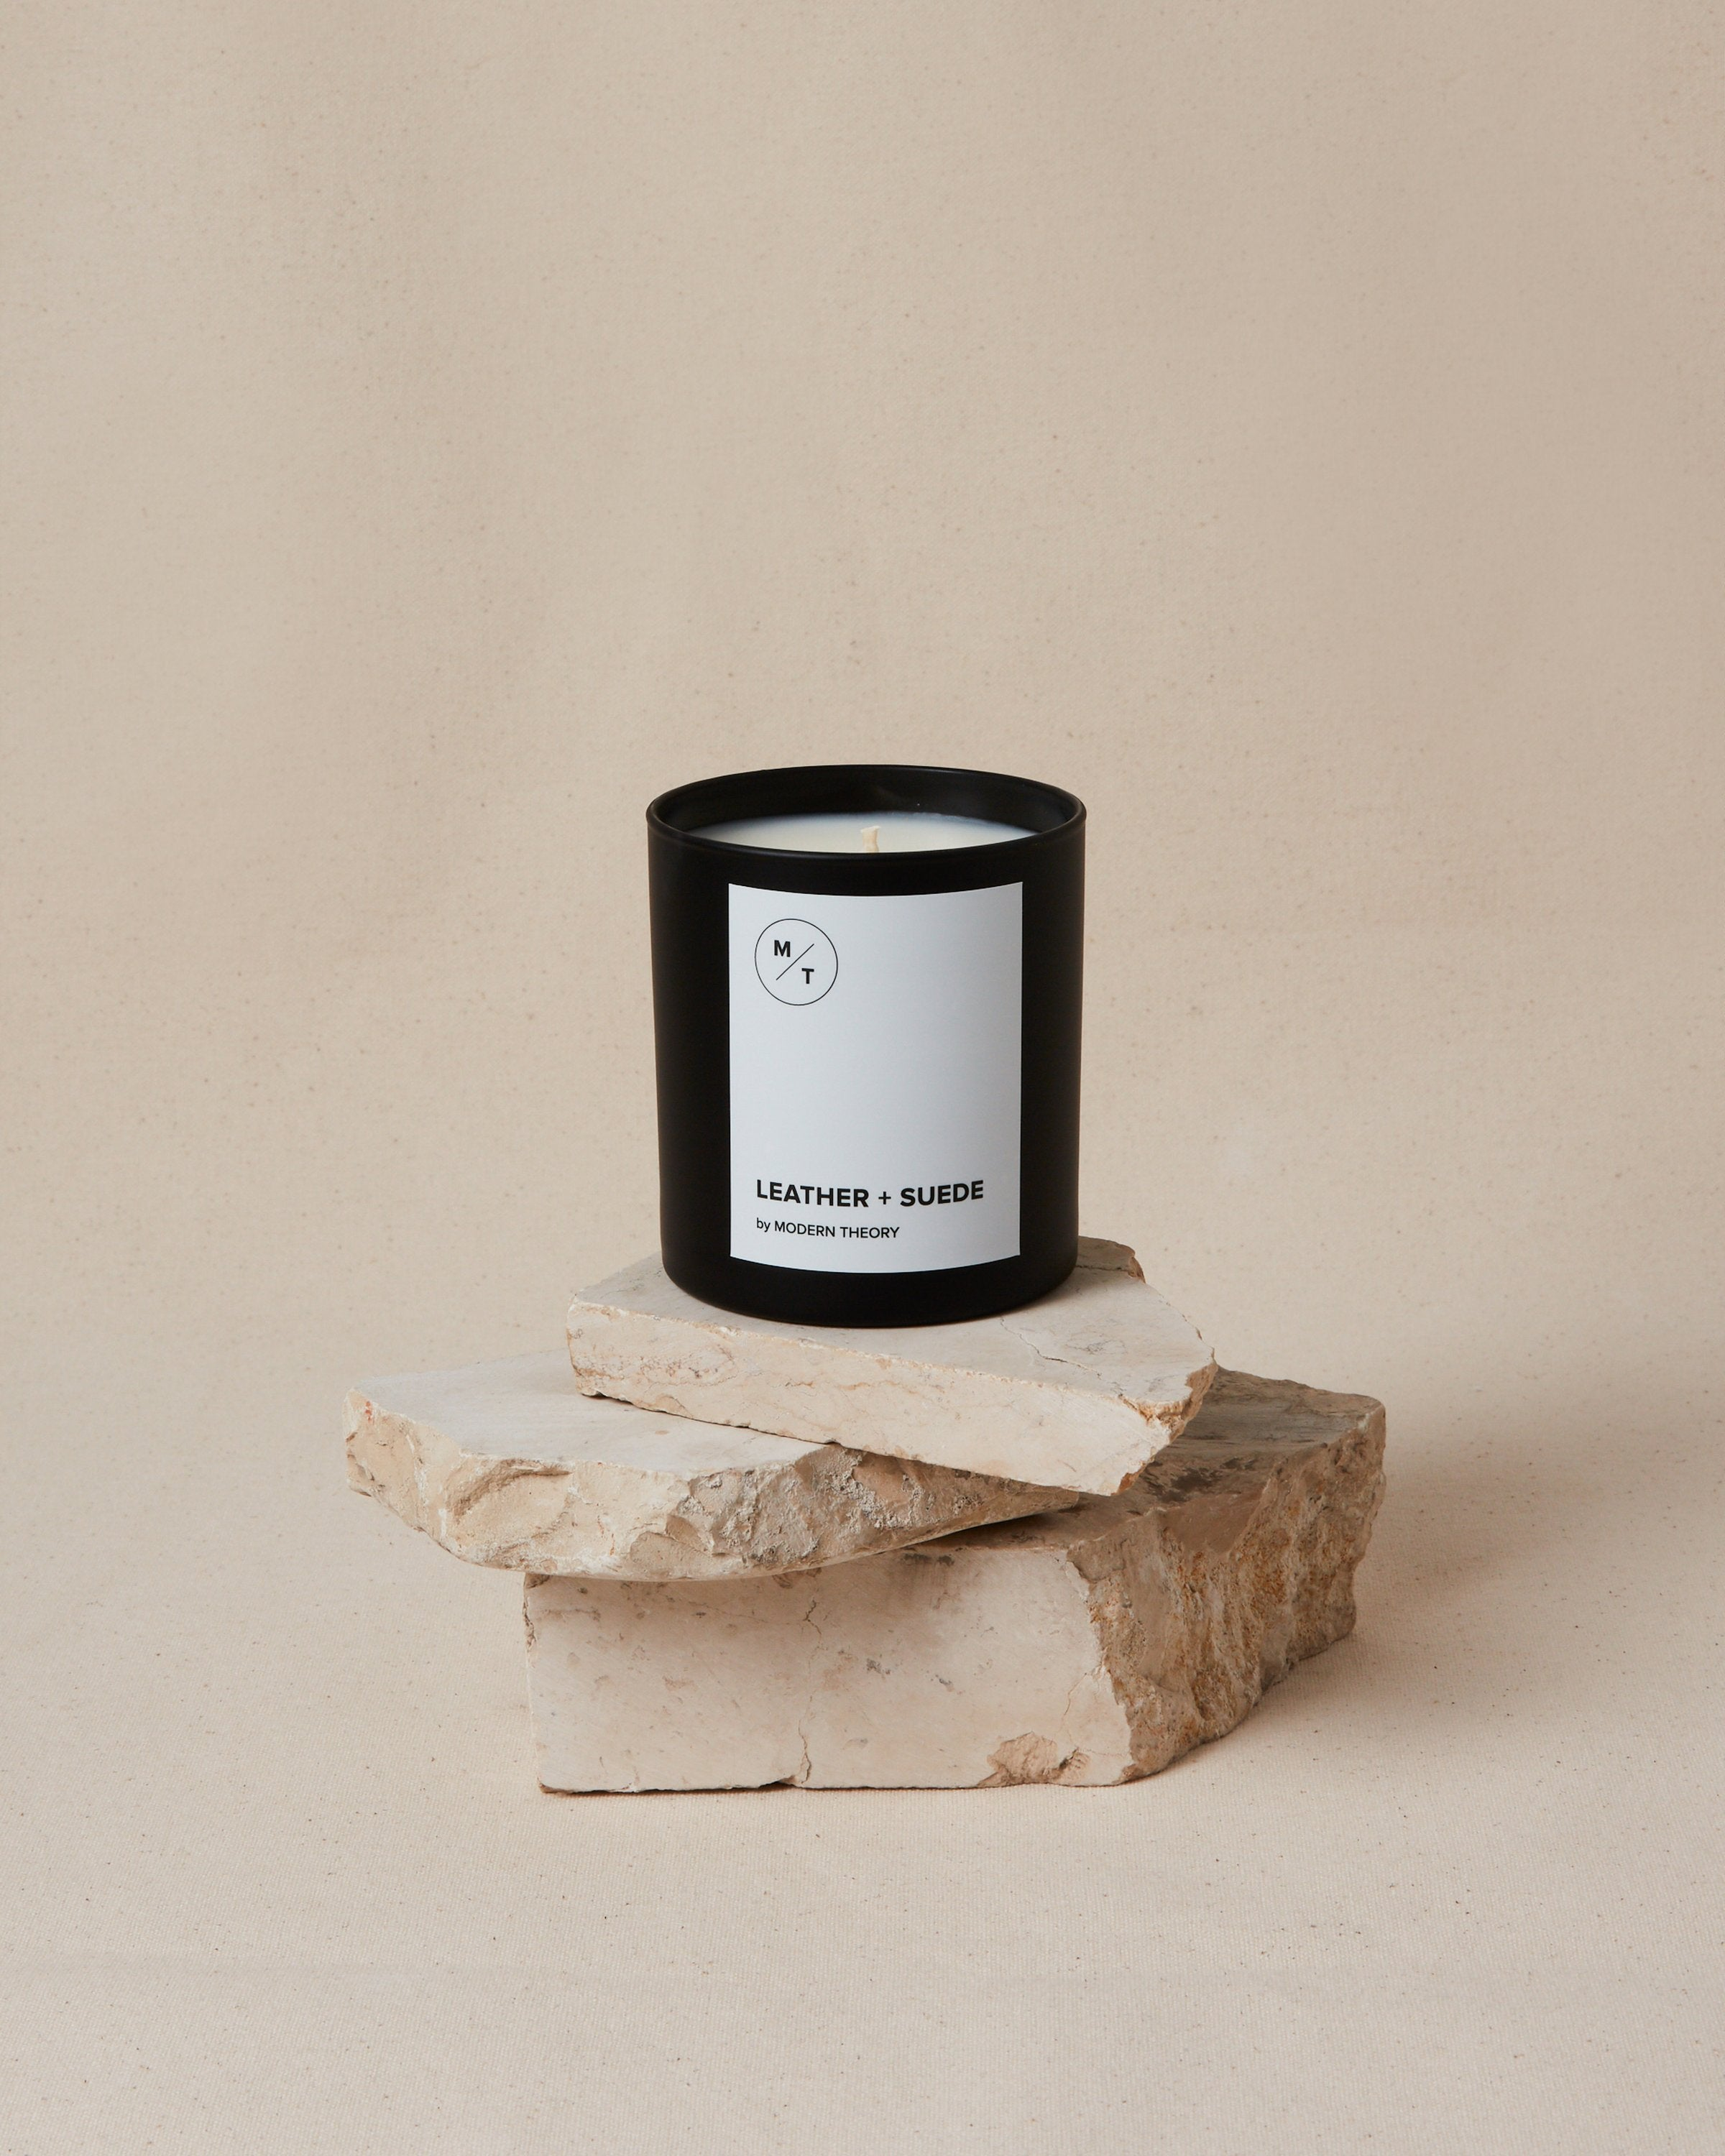 Leather + Suede Coconut Blend Candle | RitualElement